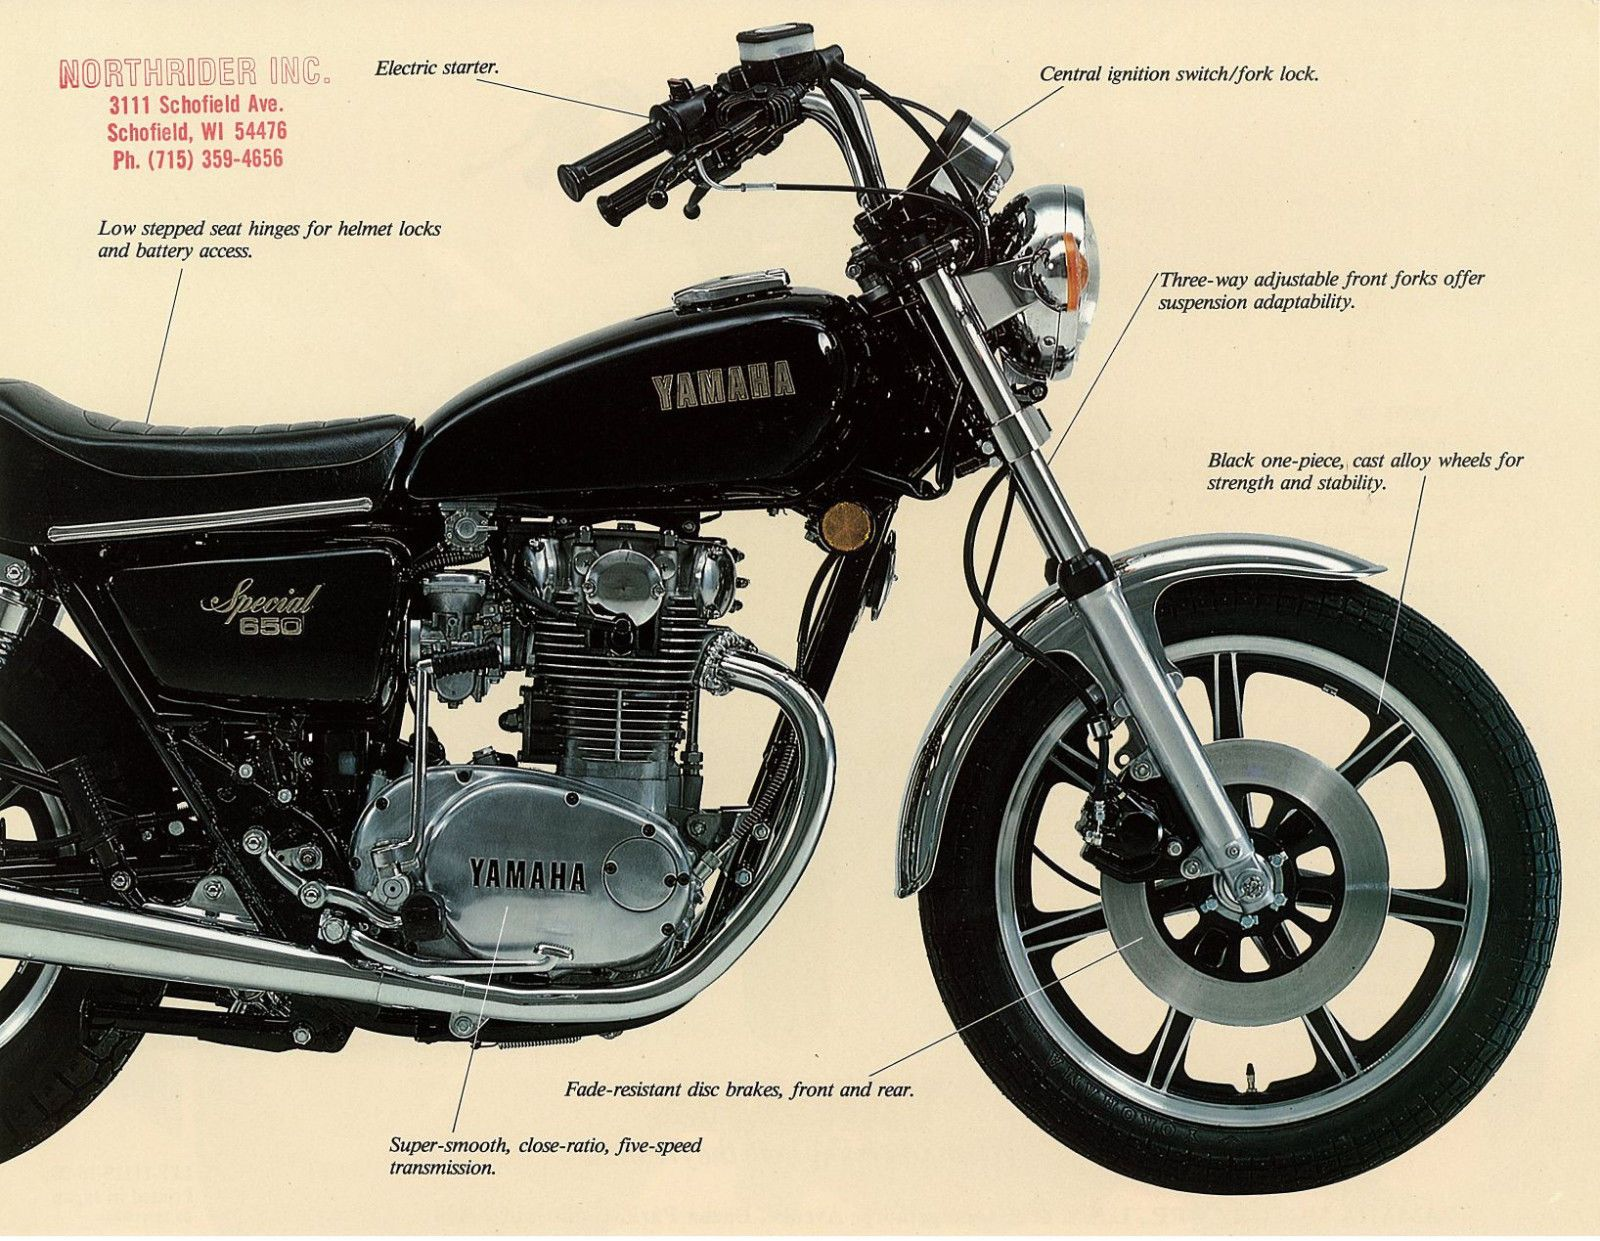 Details about YAMAHA Brochure XS650 XS650S XS650-SF 1979